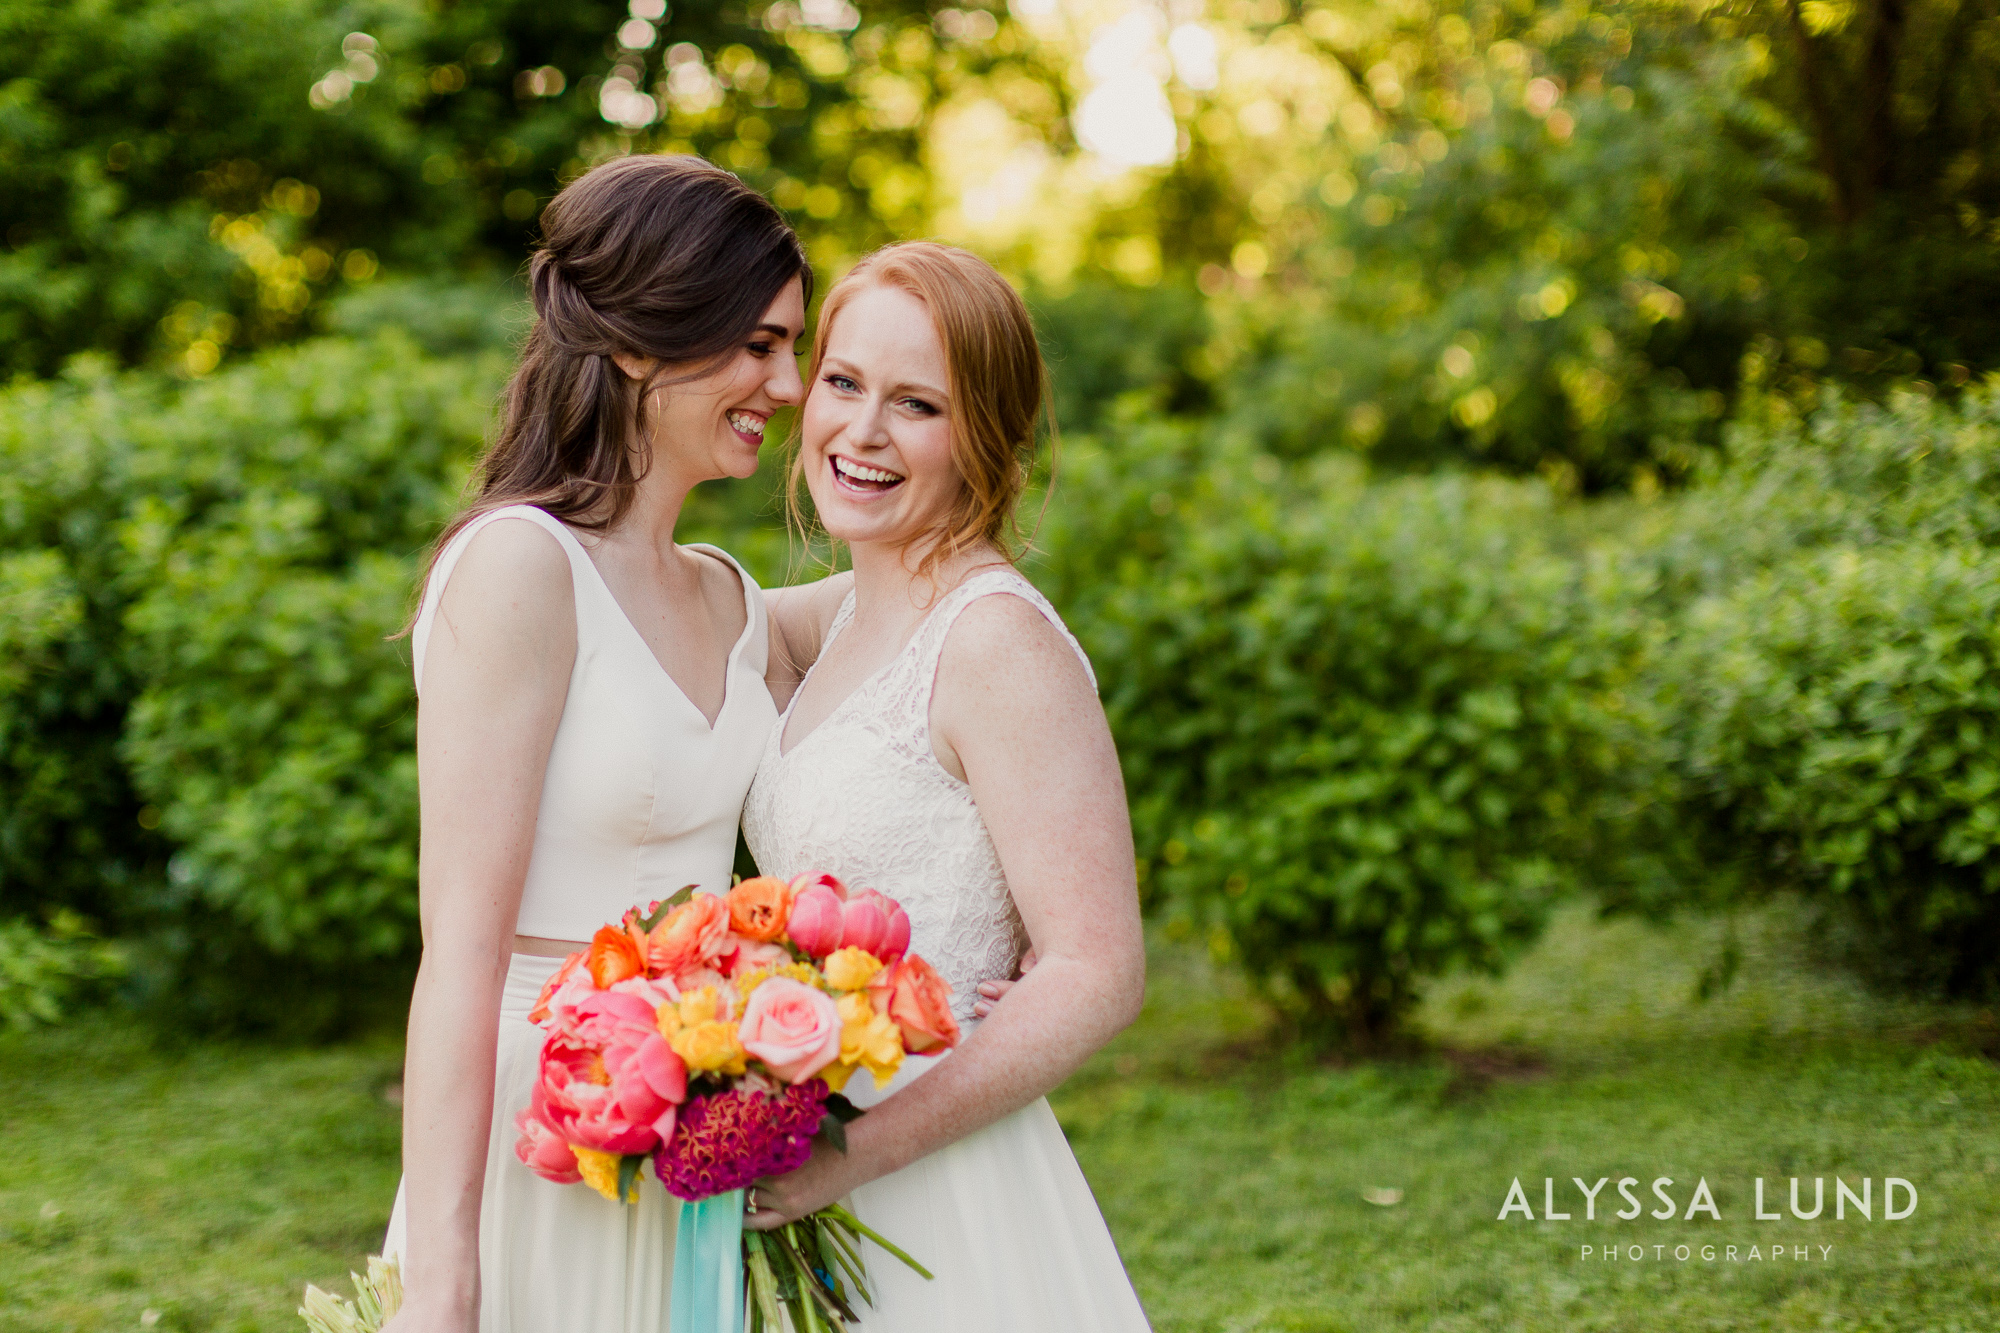 Queer wedding photography inspiration by Alyssa Lund Photography-32.jpg